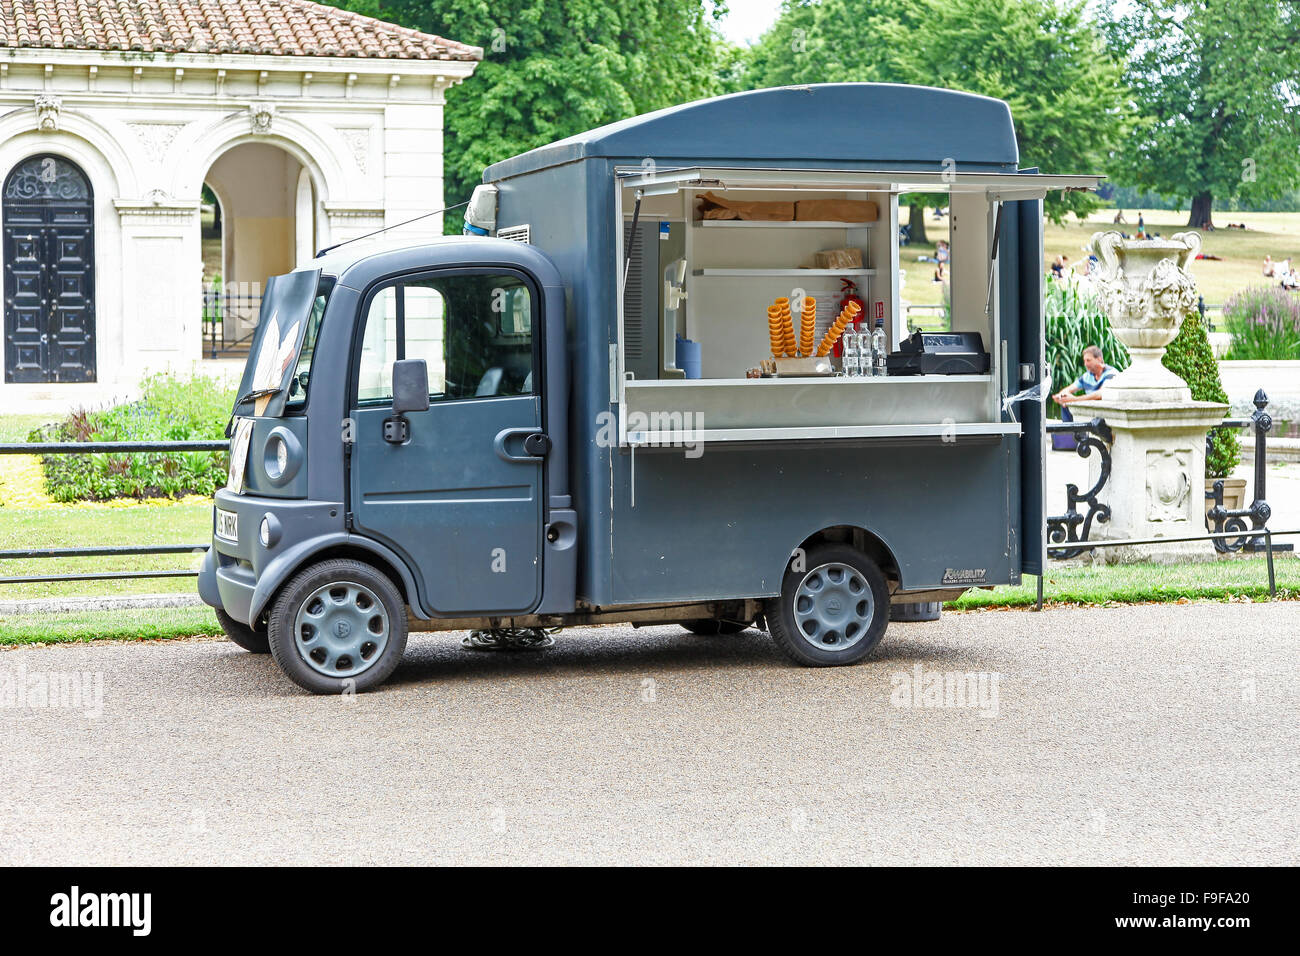 e969618d2c A mobile food van in the Italian Gardens in Kensington Palace Gardens  London England UK -